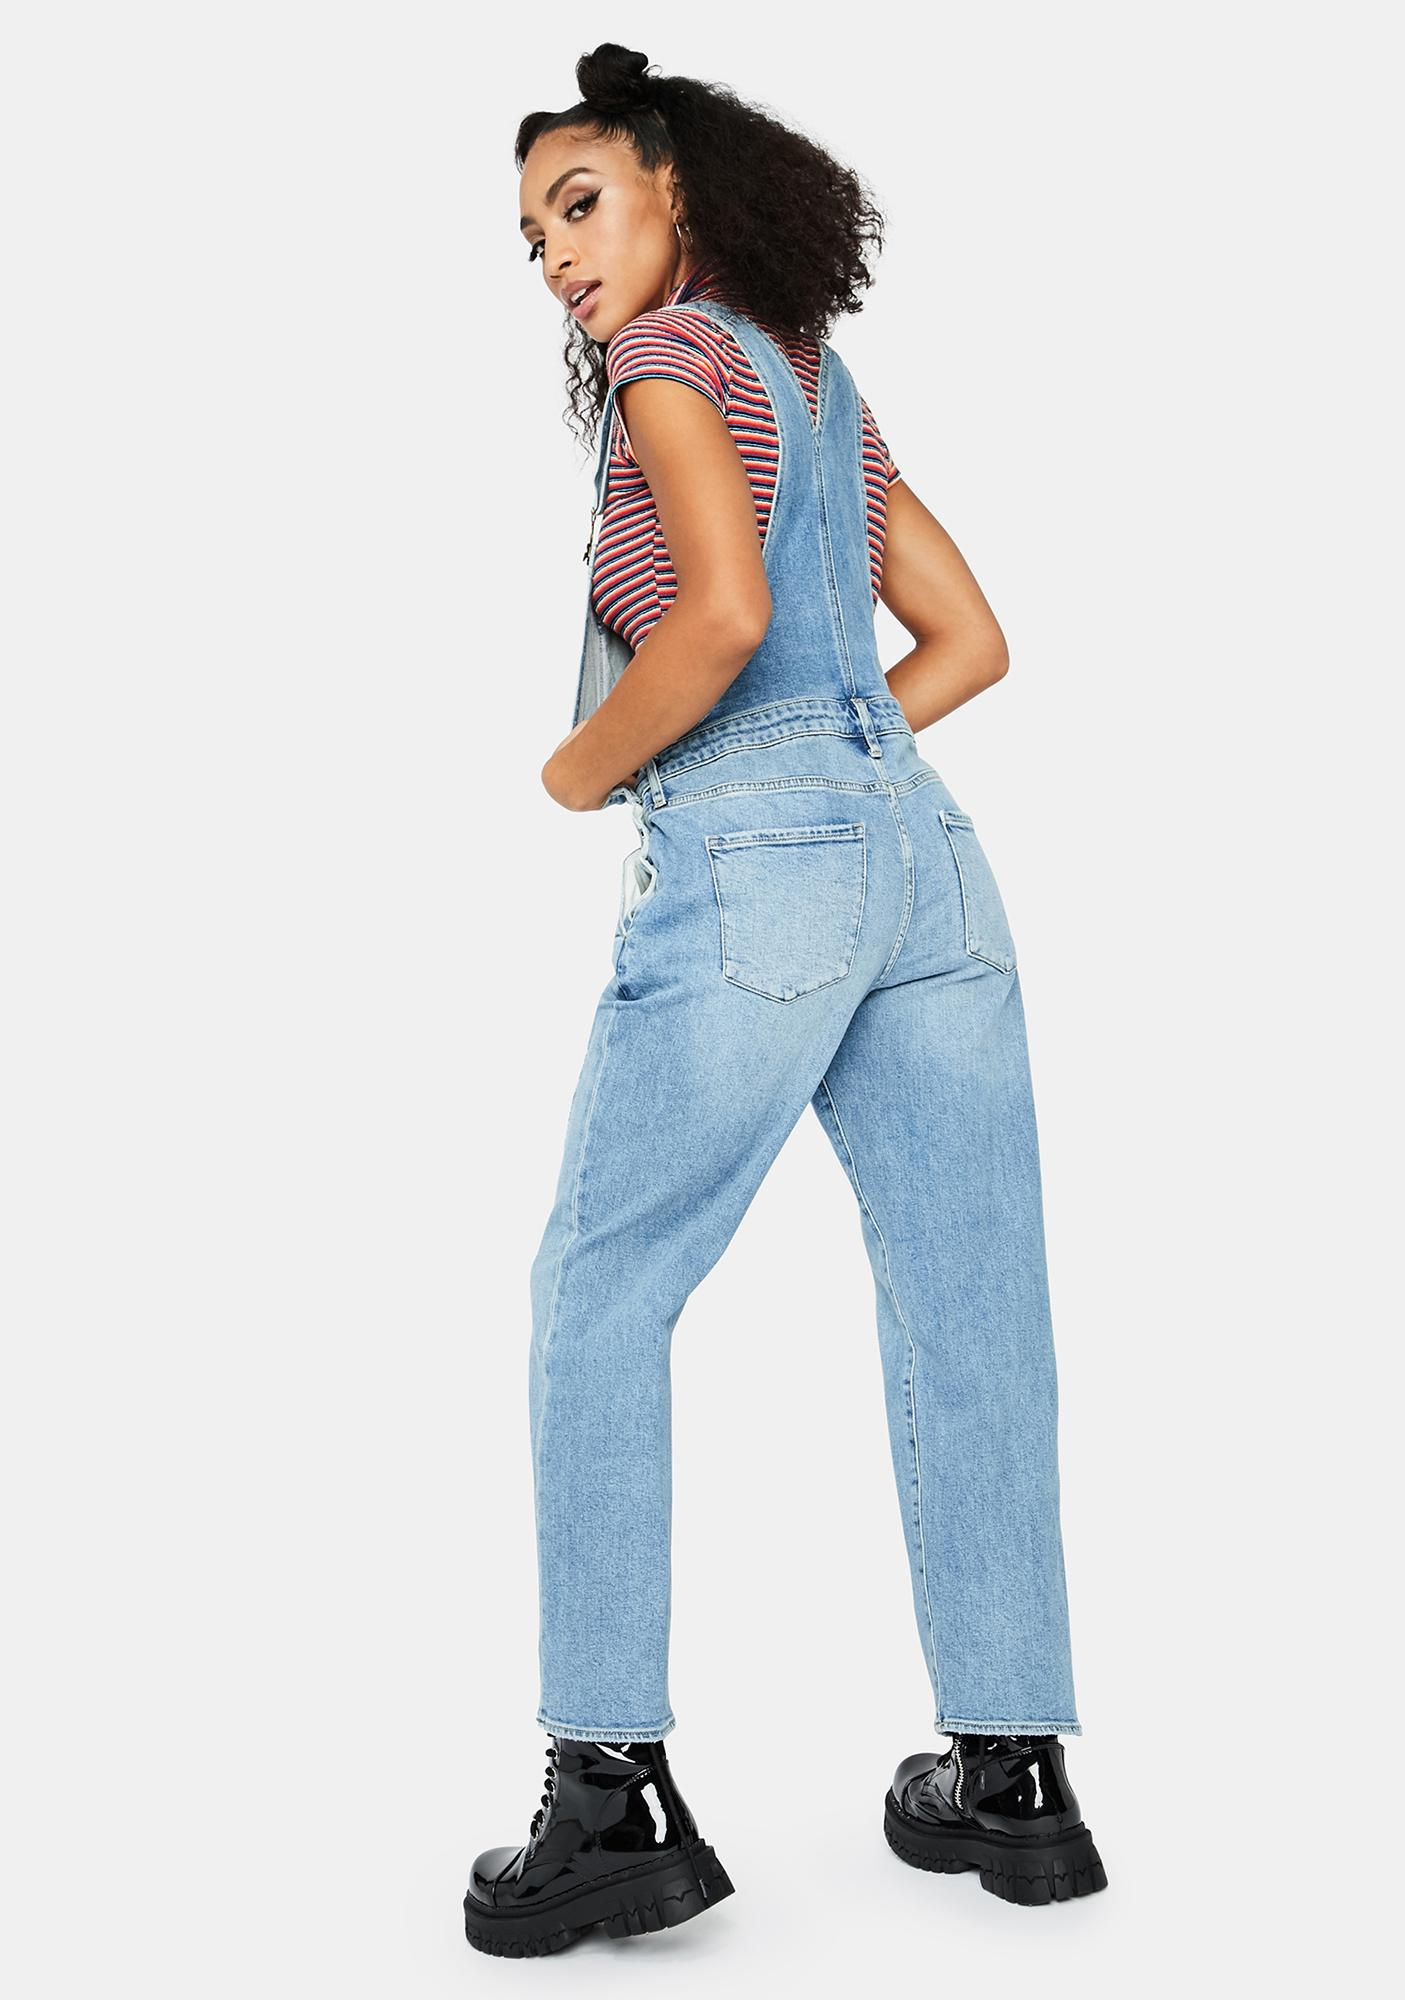 Articles of Society Moorhead Blue Woodstock Overalls